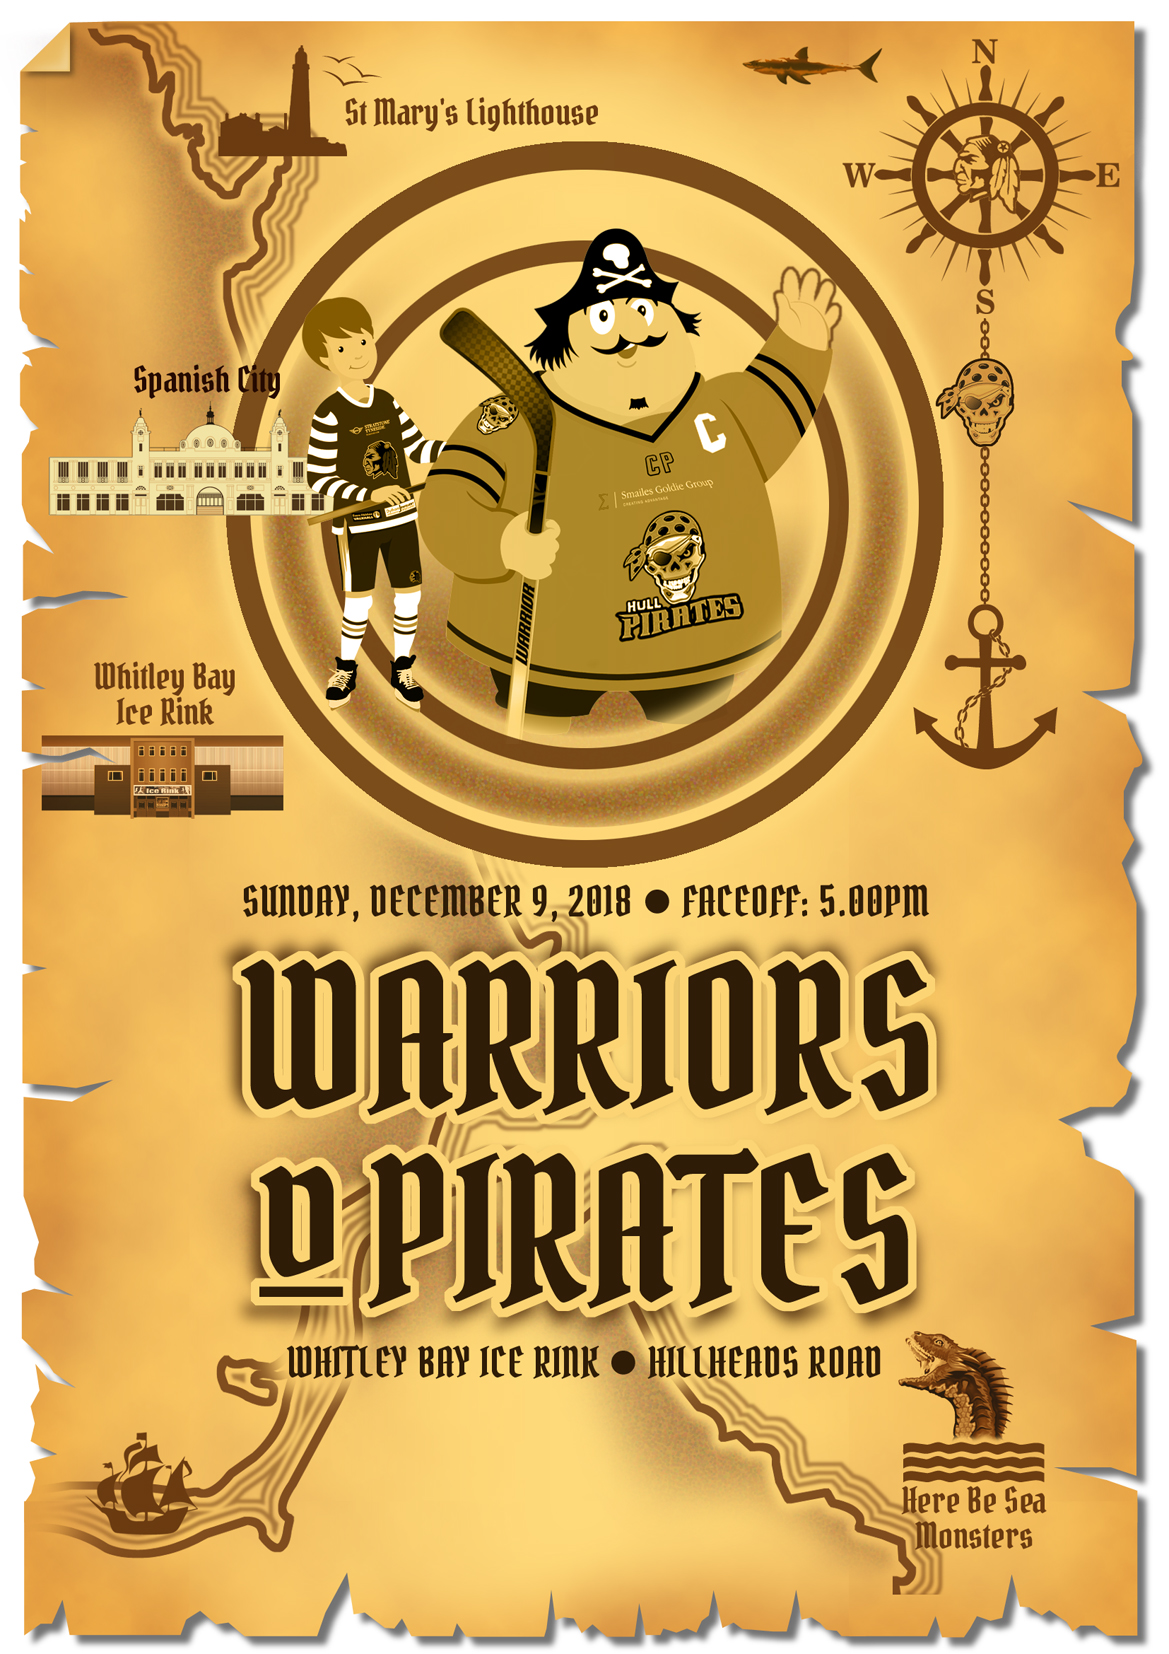 Whitley Warriors vs Hull Pirates @ Whitley Bay Ice Rink, Sunday 9 December, face off 5pm